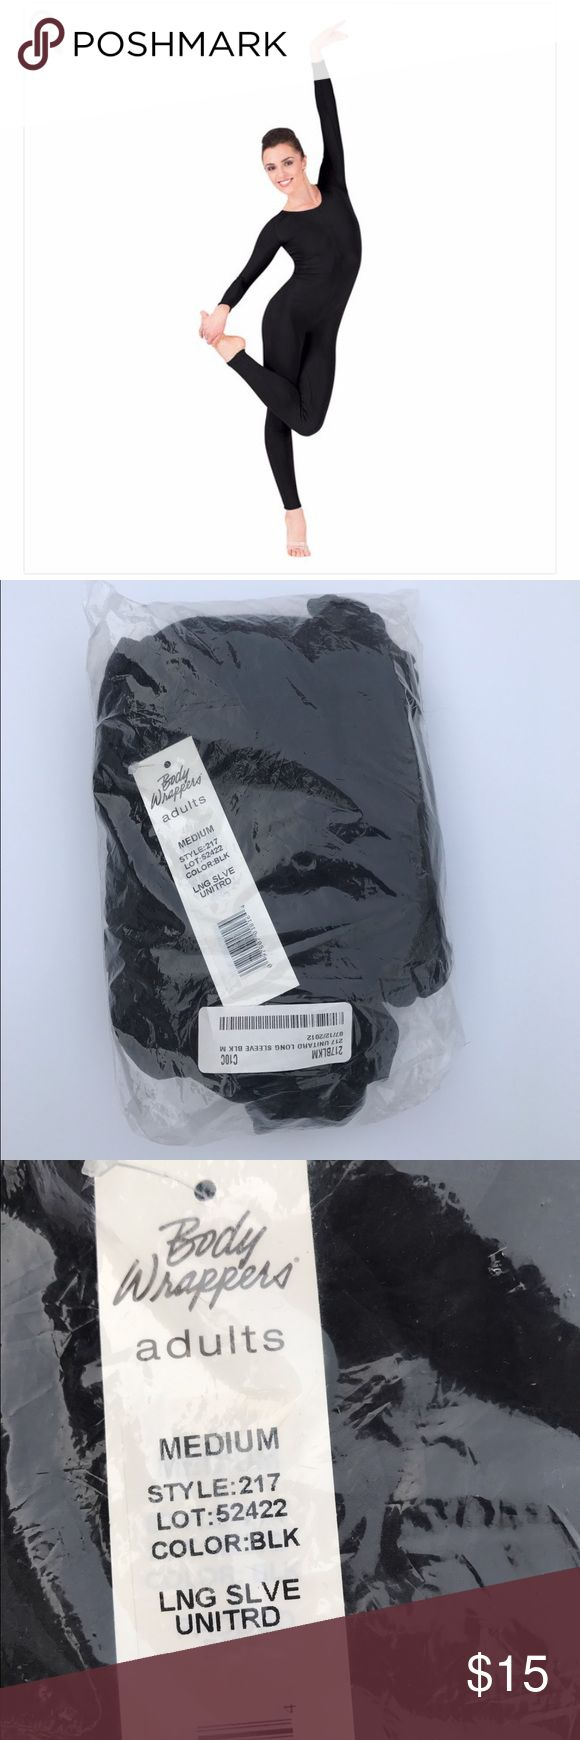 Body Wrappers Black Adult Unitard, Size M New with tags Black Unitard by Body Wrappers with long sleeves. Size M. This is style 217. Perfect for dancers or to wear underneath a costume. I welcome questions. Body Wrappers Other